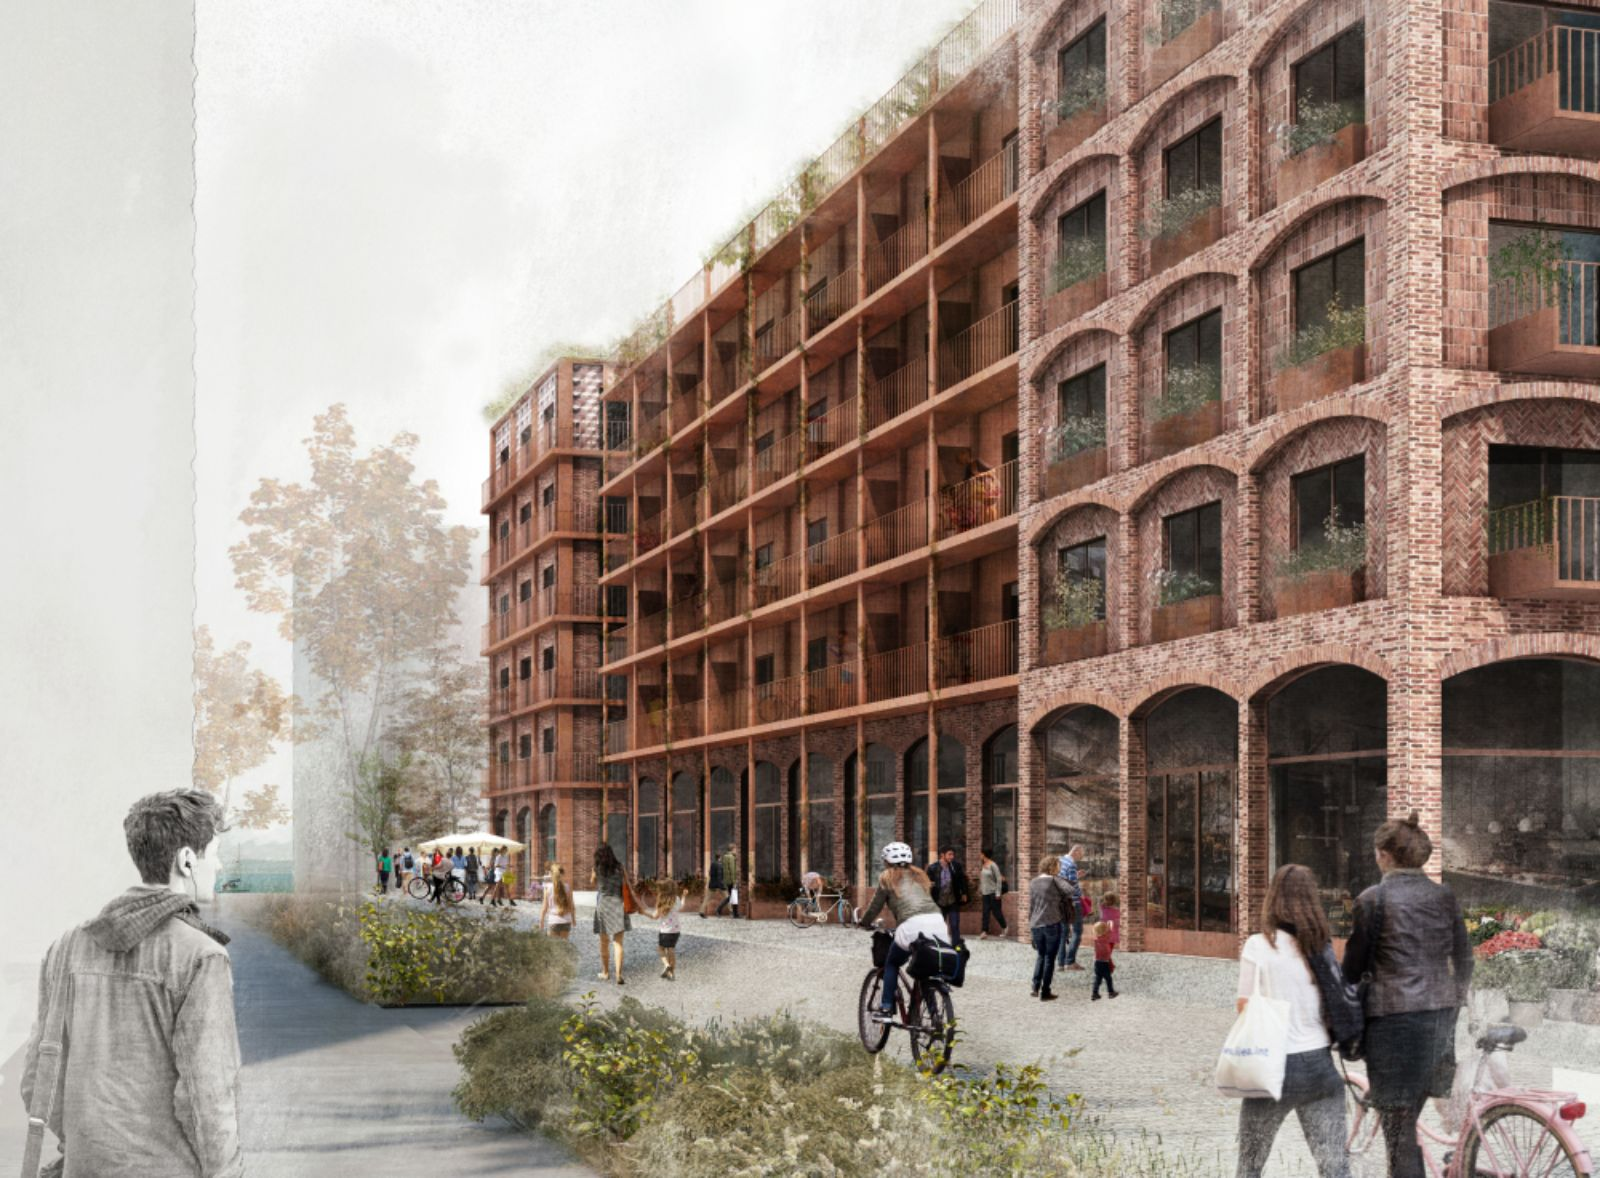 green housing project in Stockholm Royal Seaport